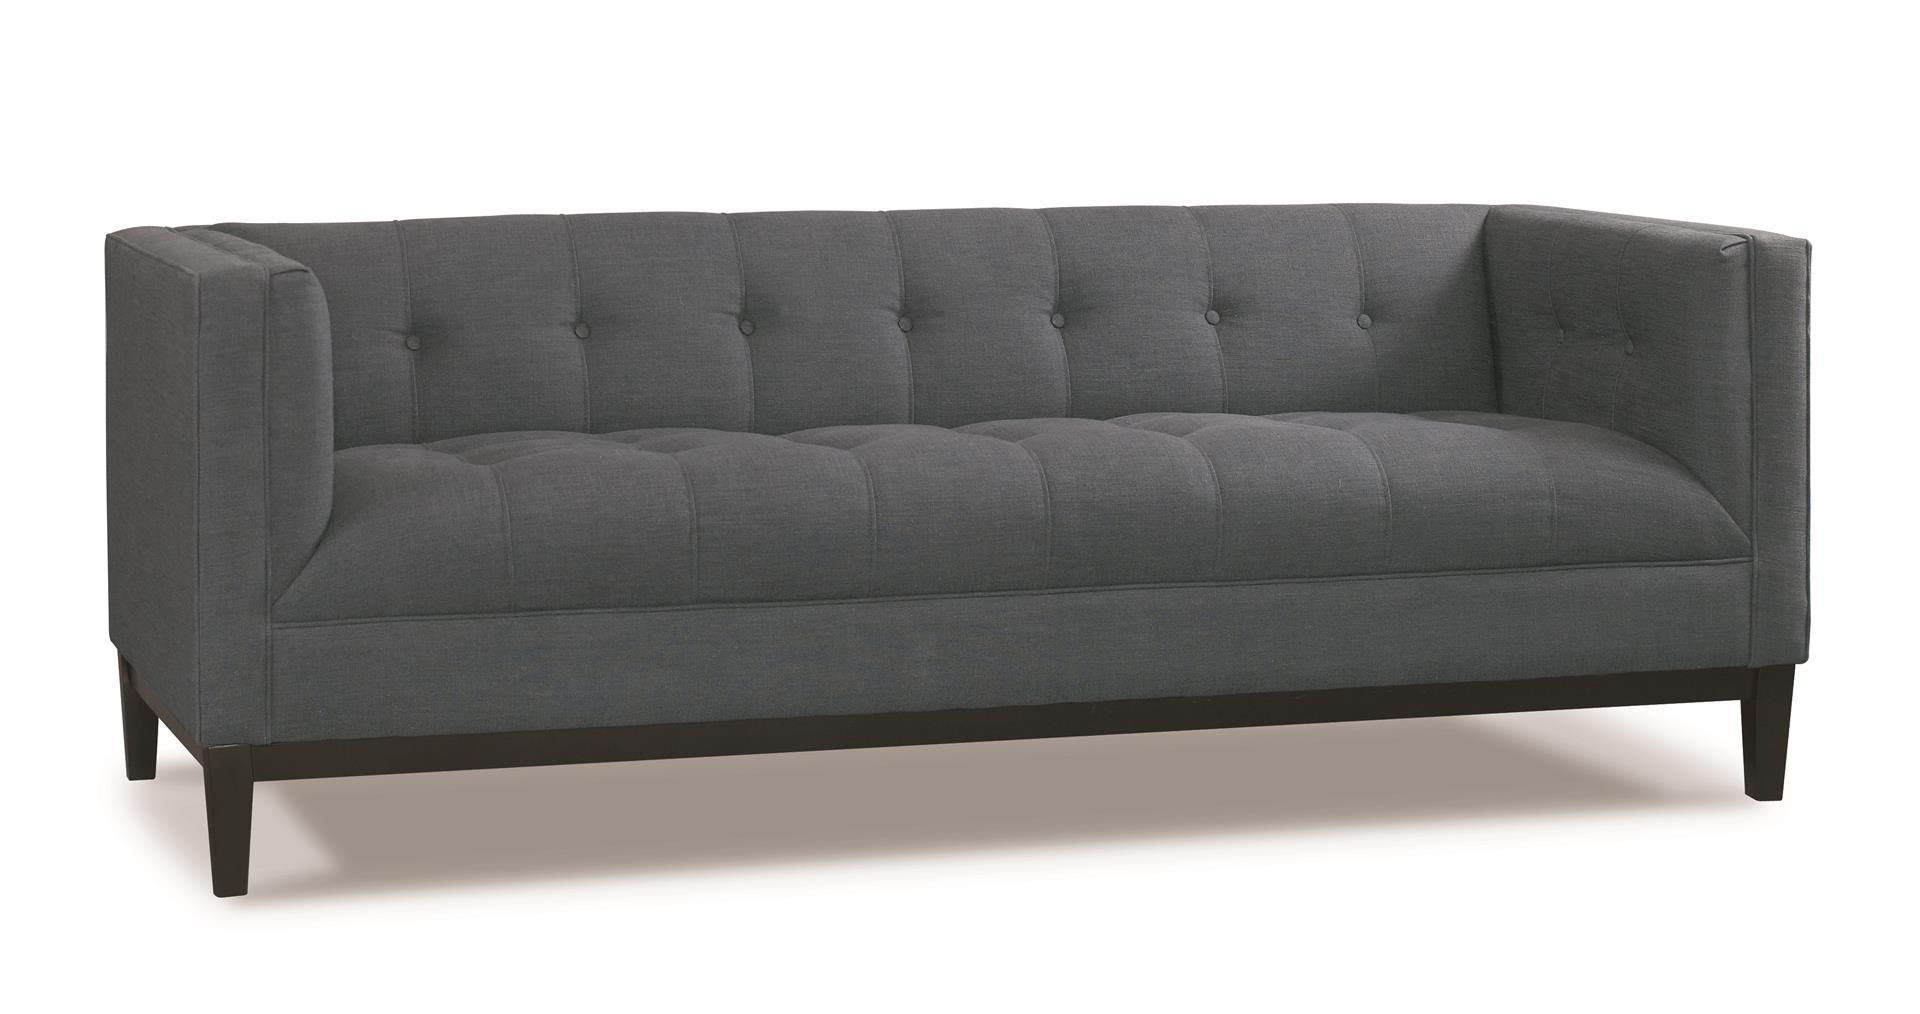 Precedent cole sofa from dutchcrafters